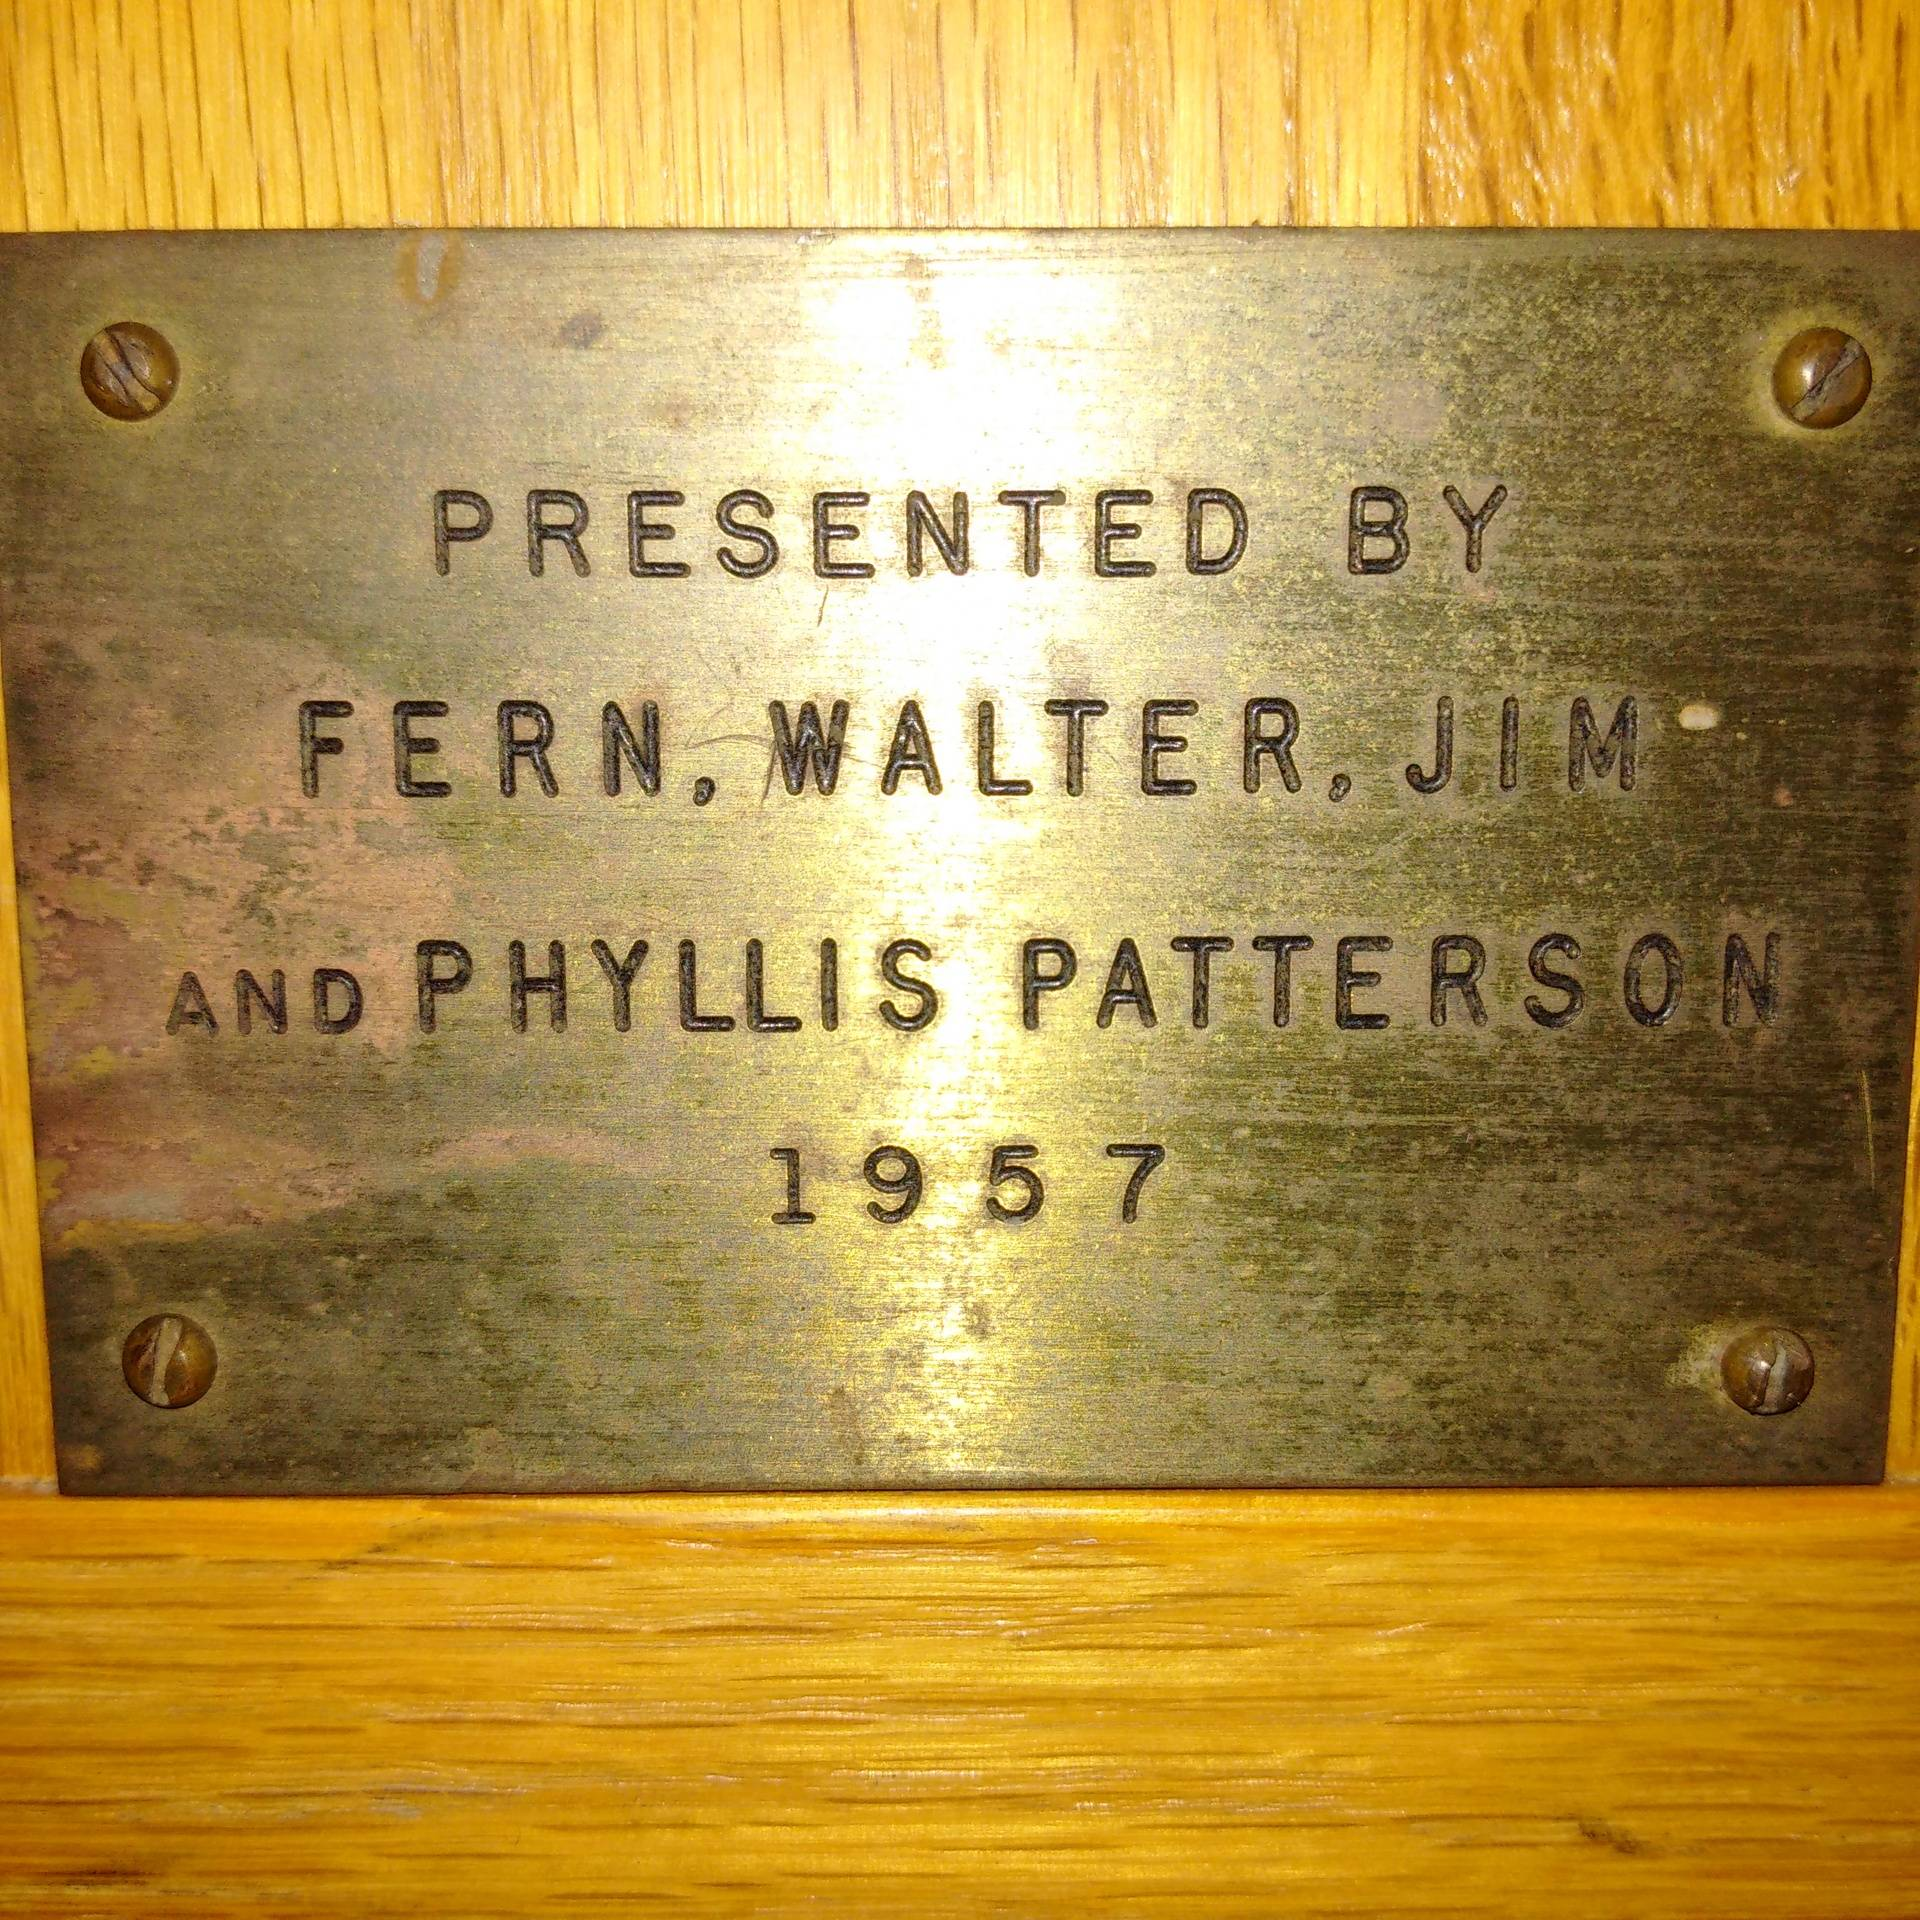 Fern, Walter and Phyllis Patterson 1957